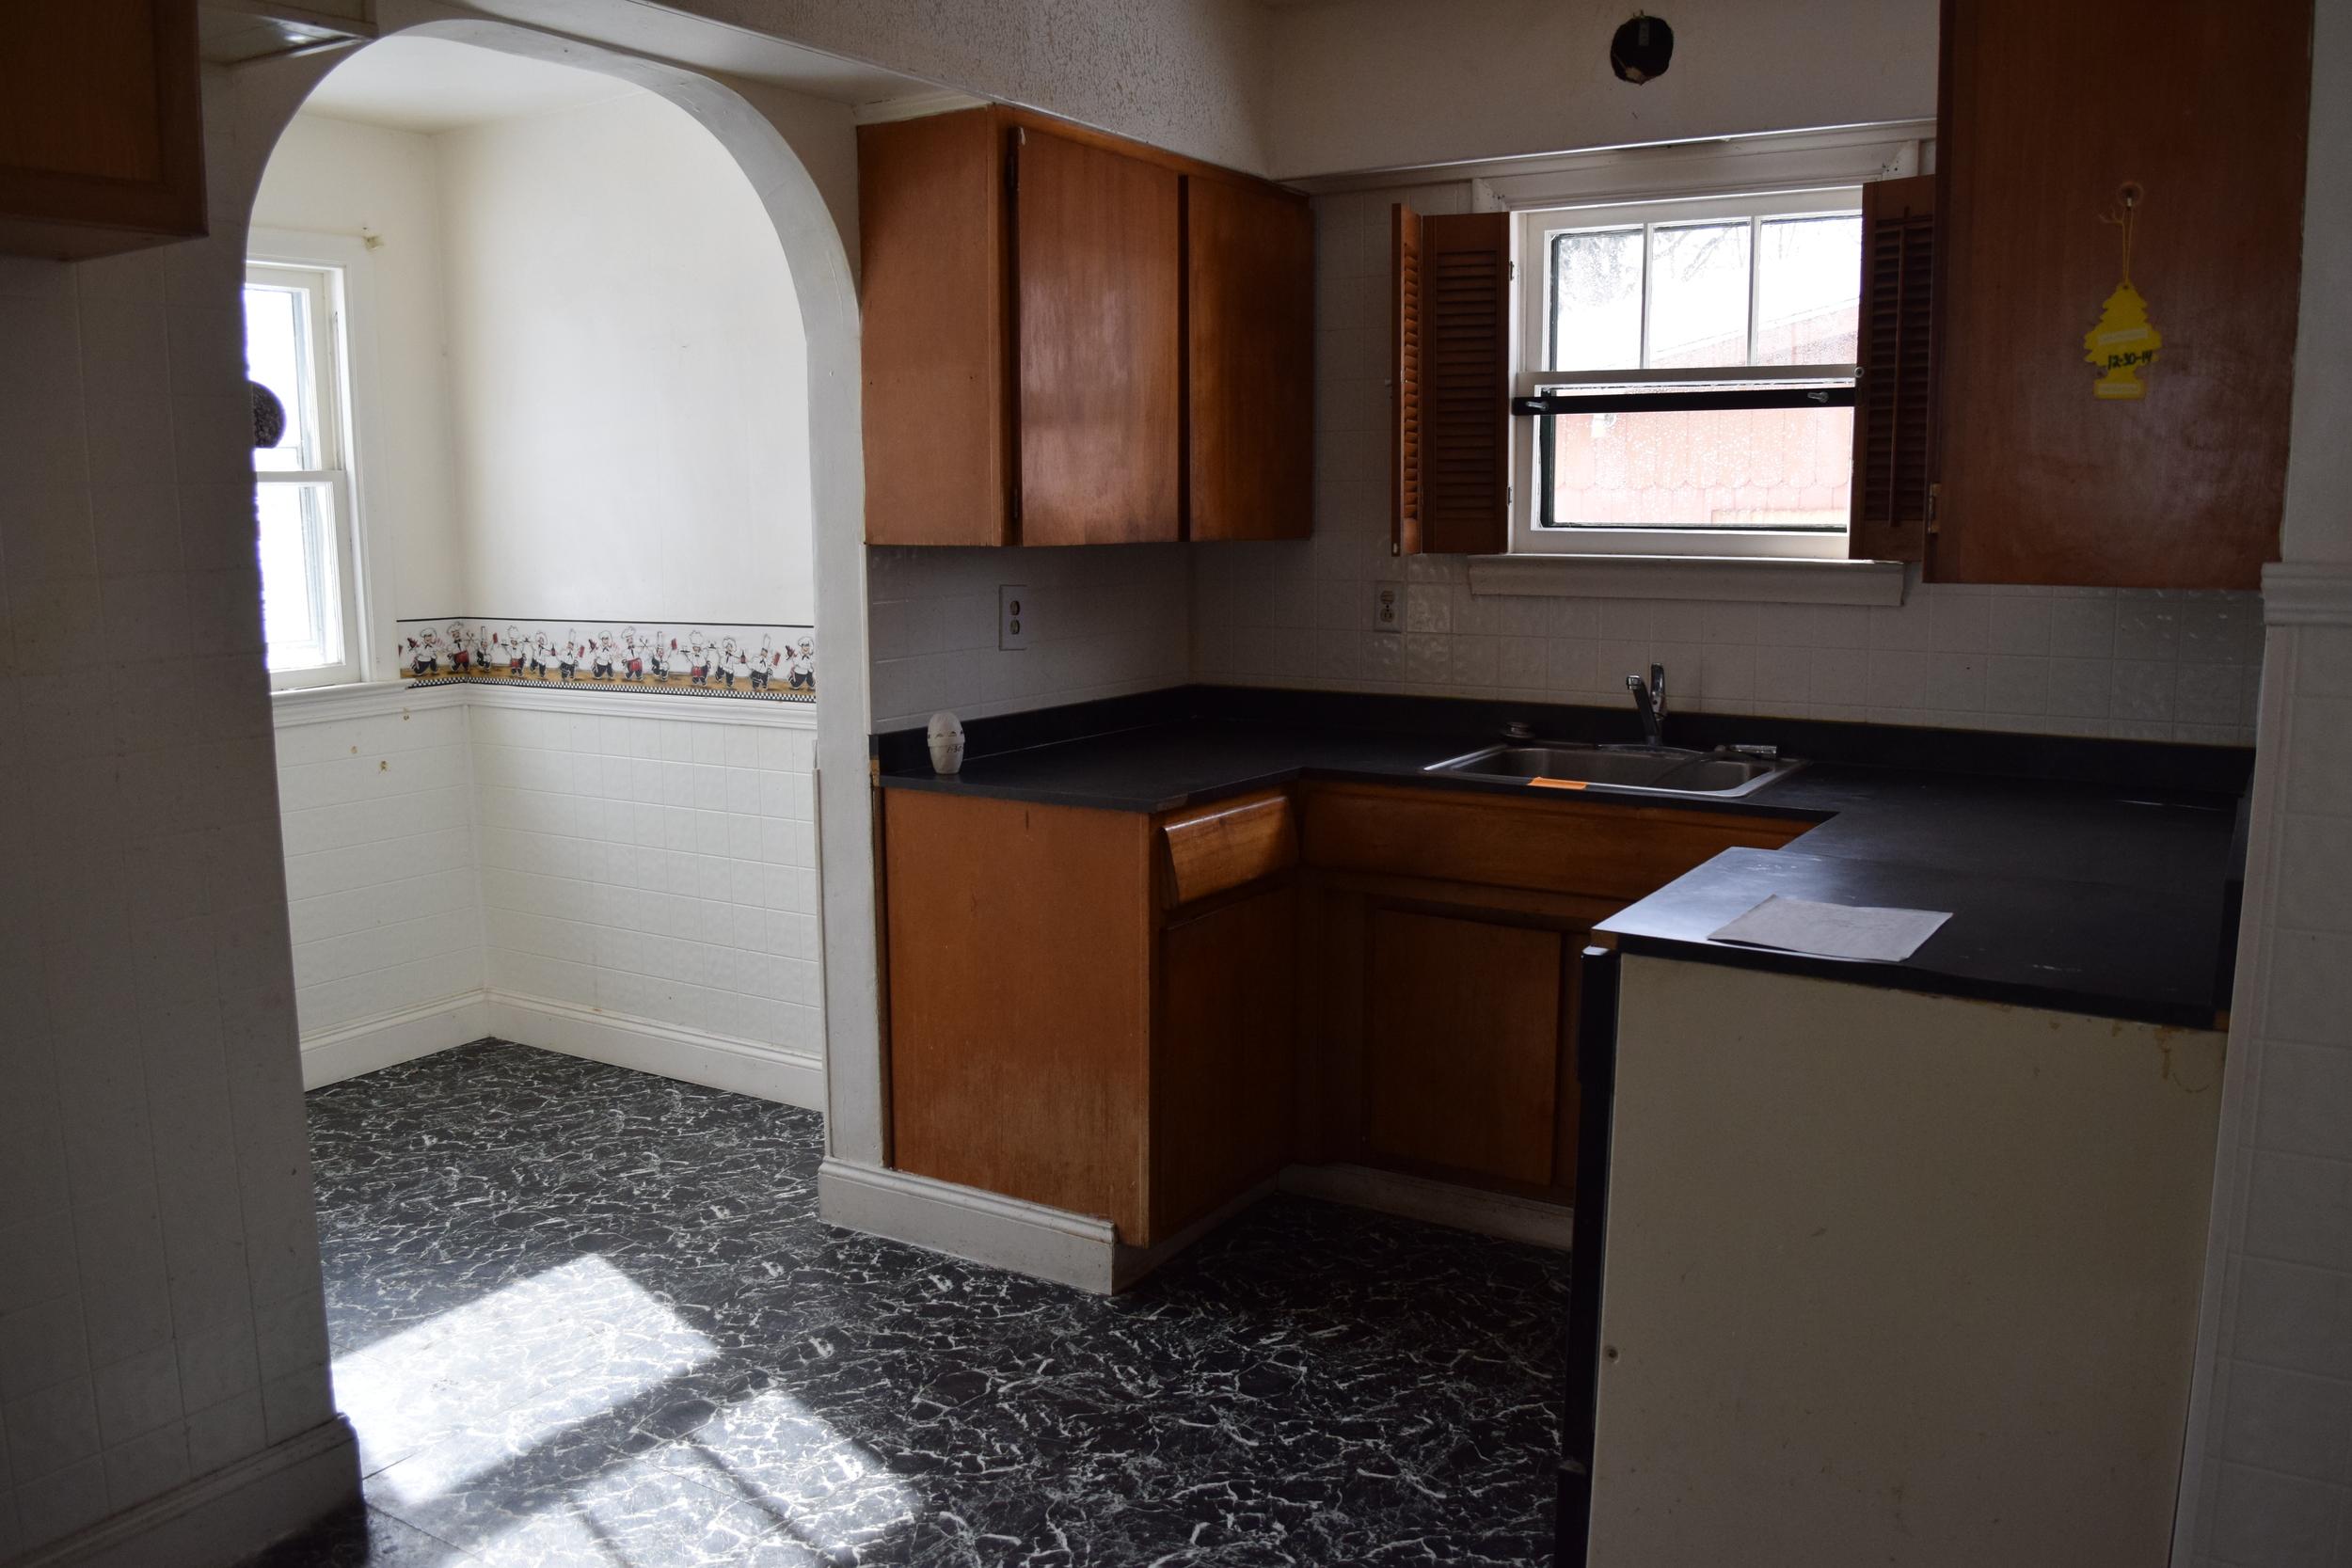 225 Pacific - Kitchen 1 Before.JPG